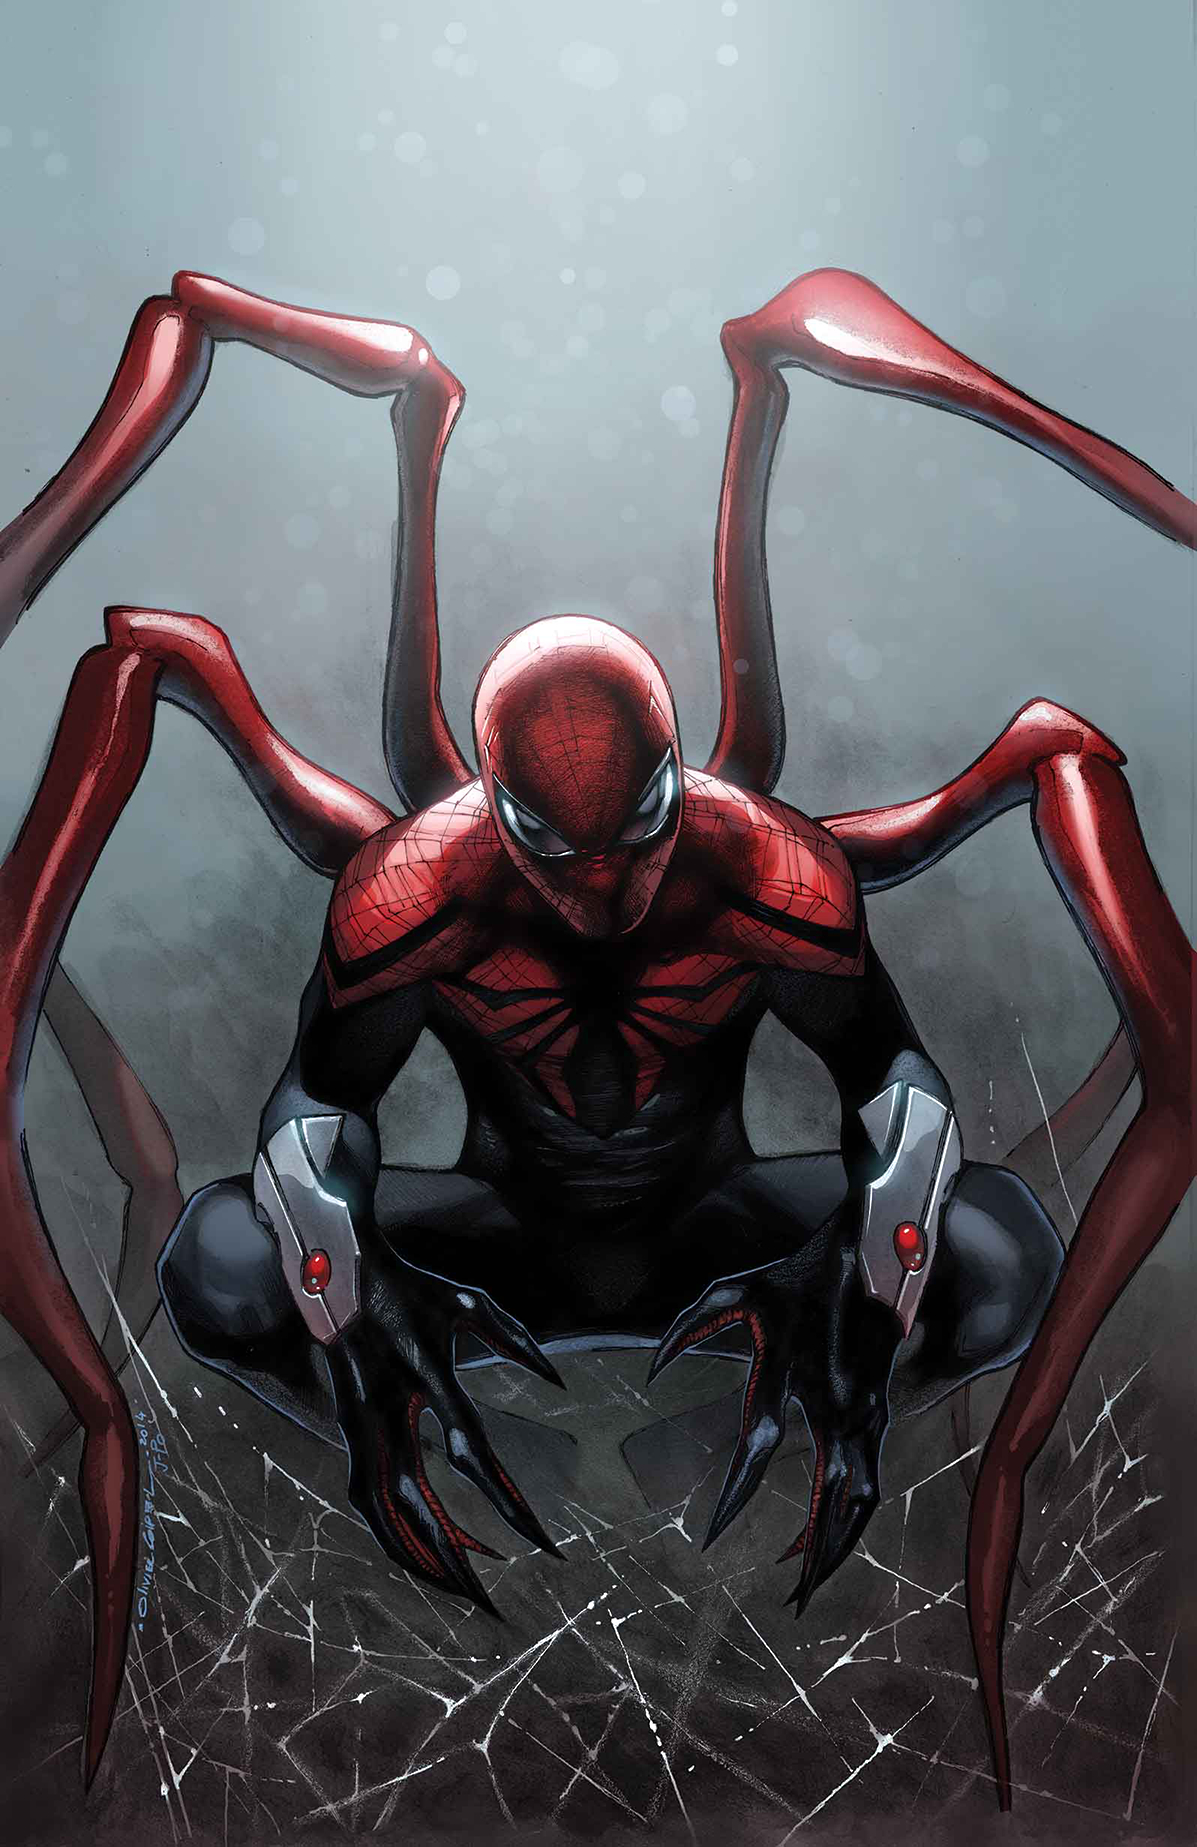 AMAZING SPIDER-MAN #10 SV